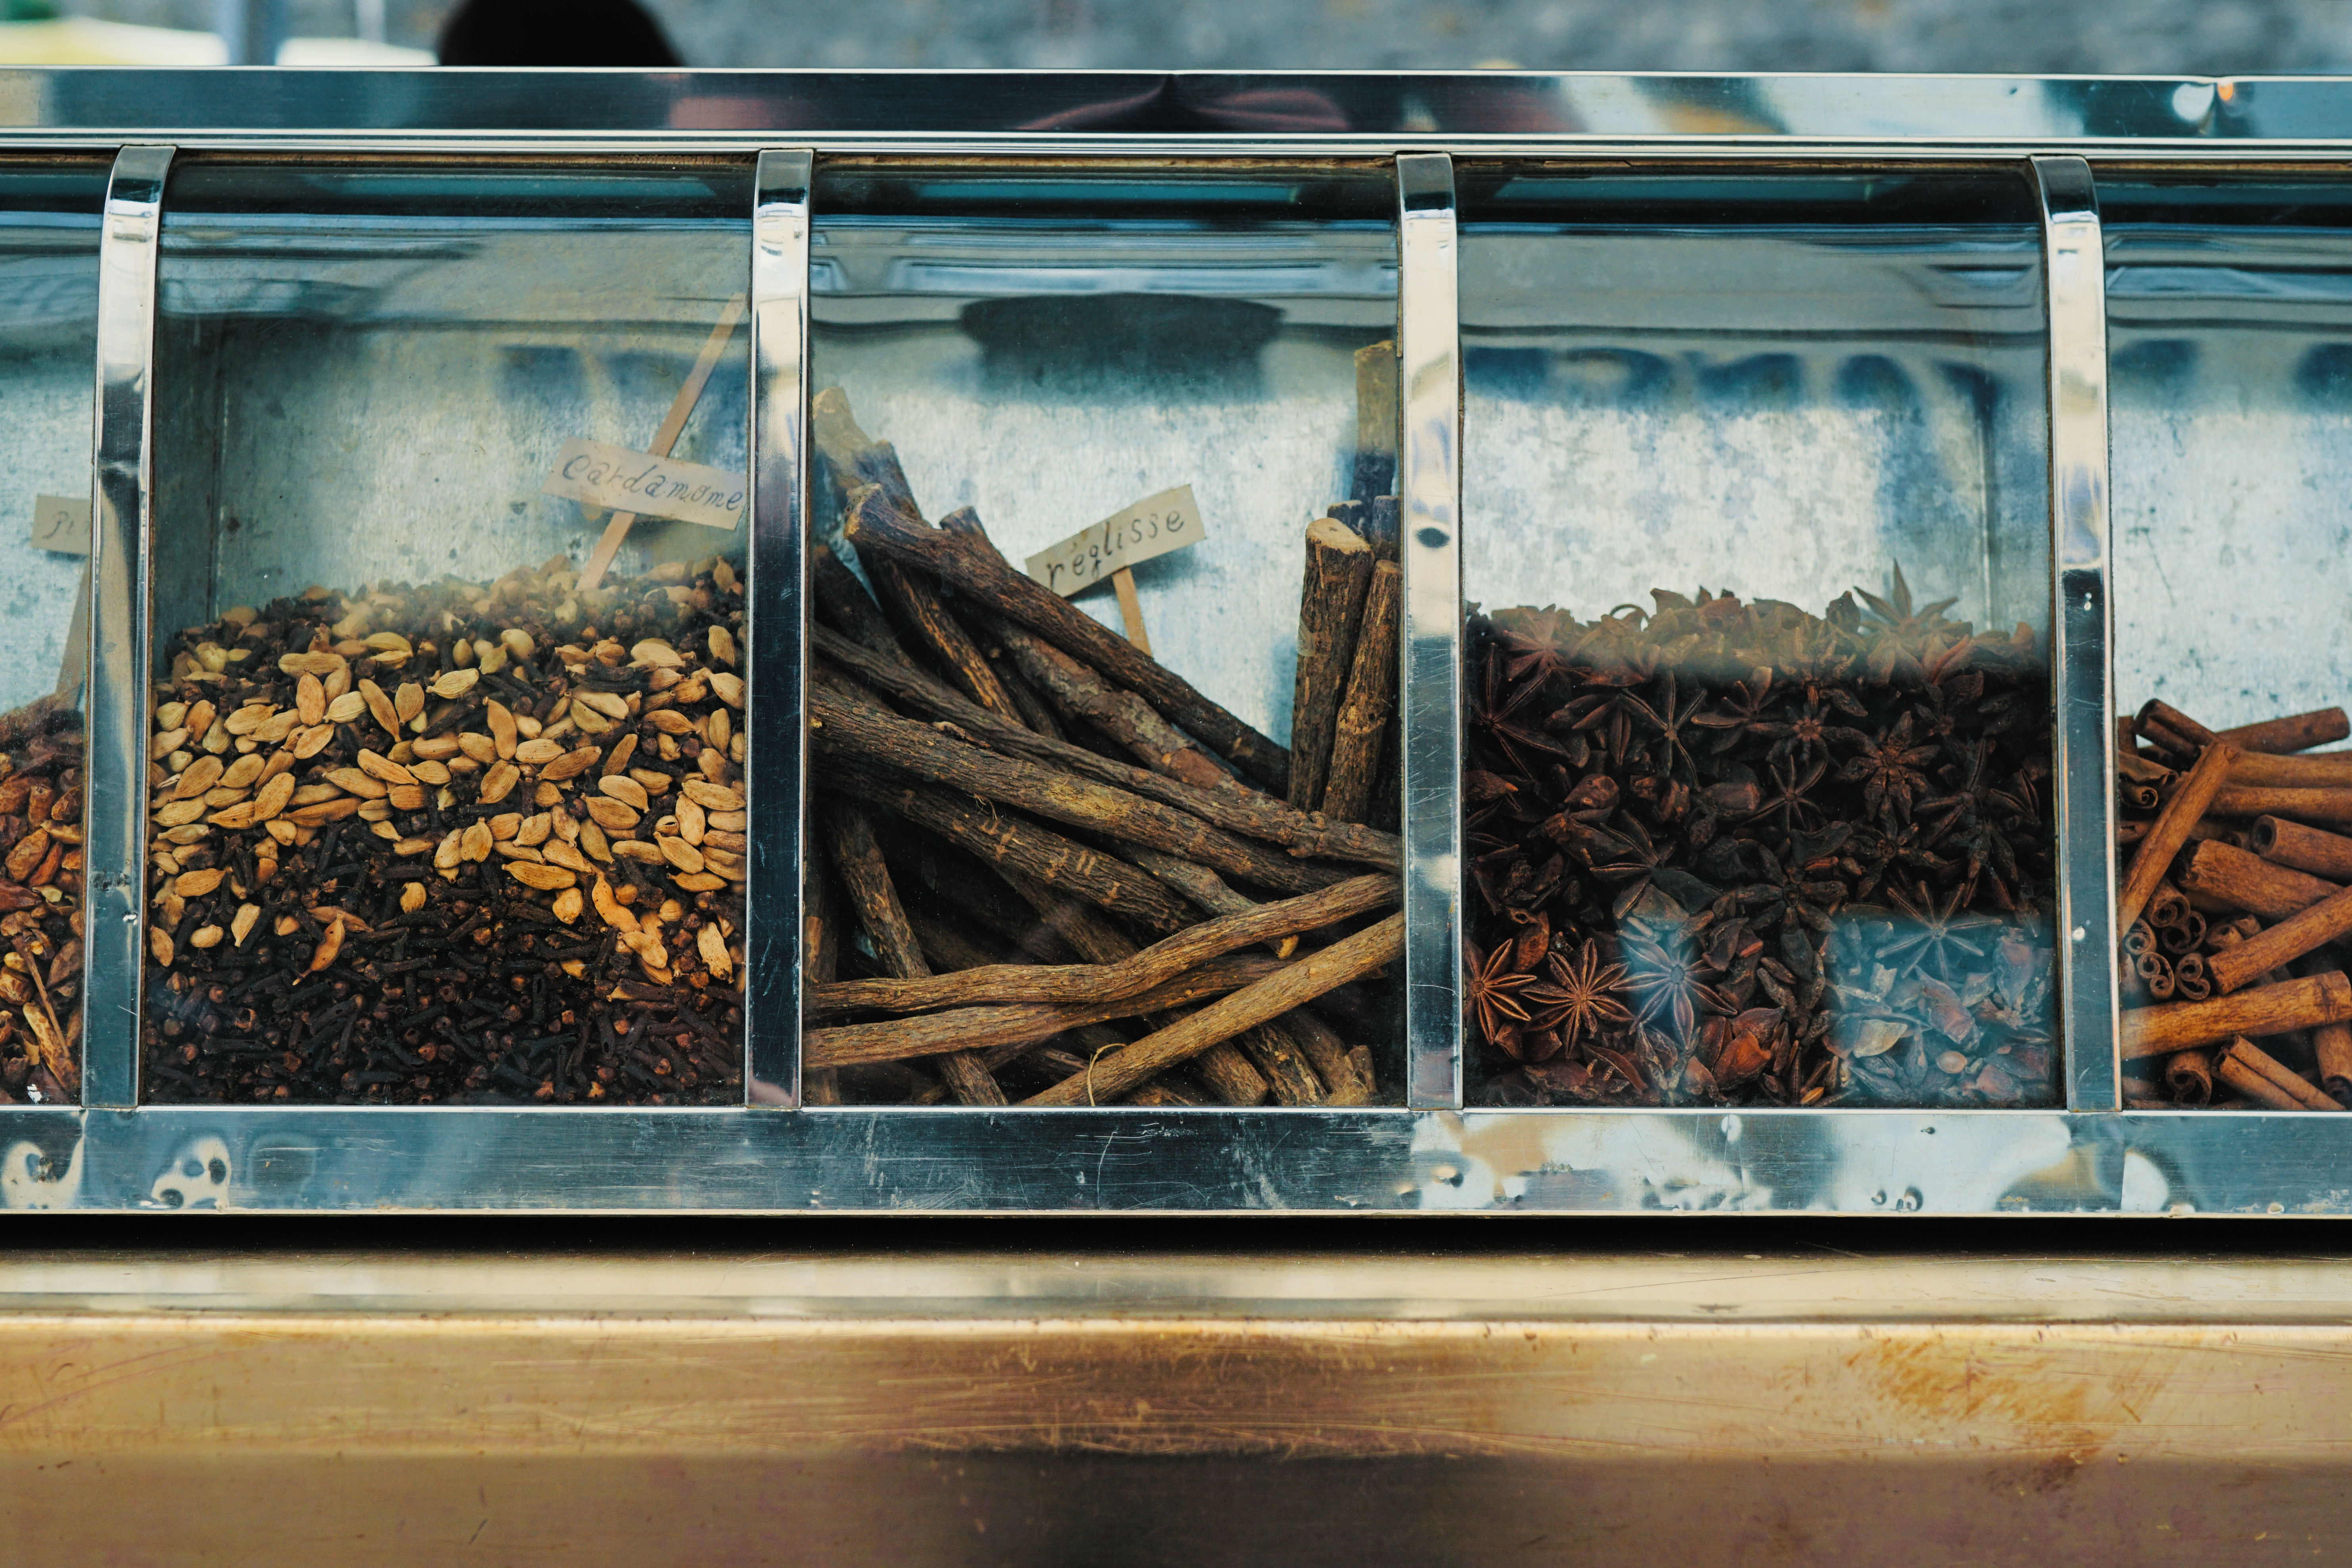 A variety of spices for sale at a market.